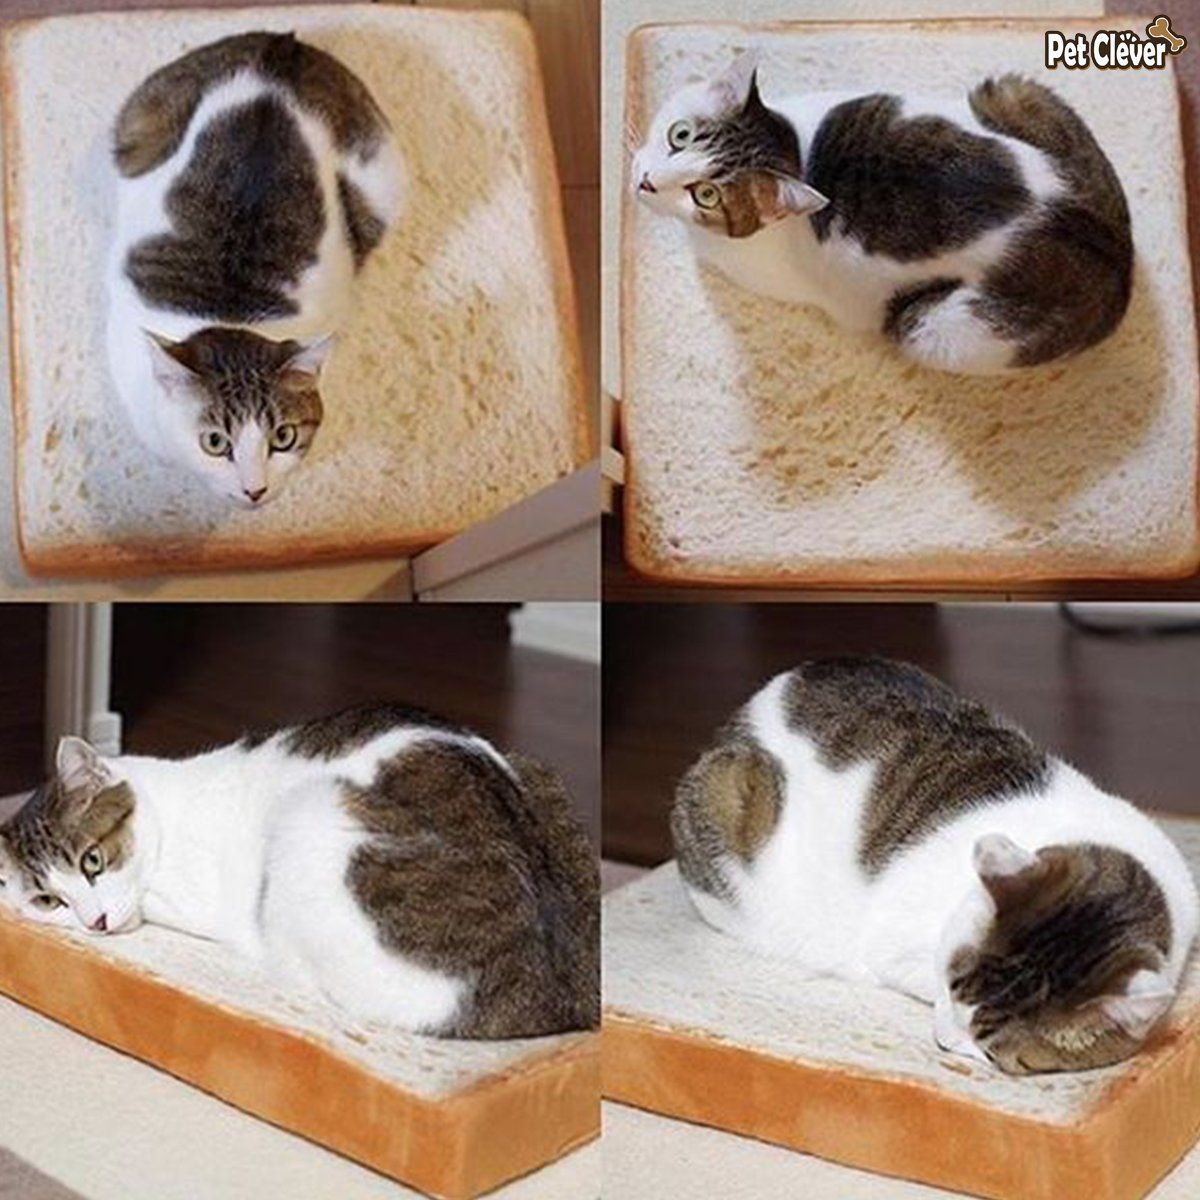 Introducing The Toast Bread Cat Bed Cat cushion, Cat mat